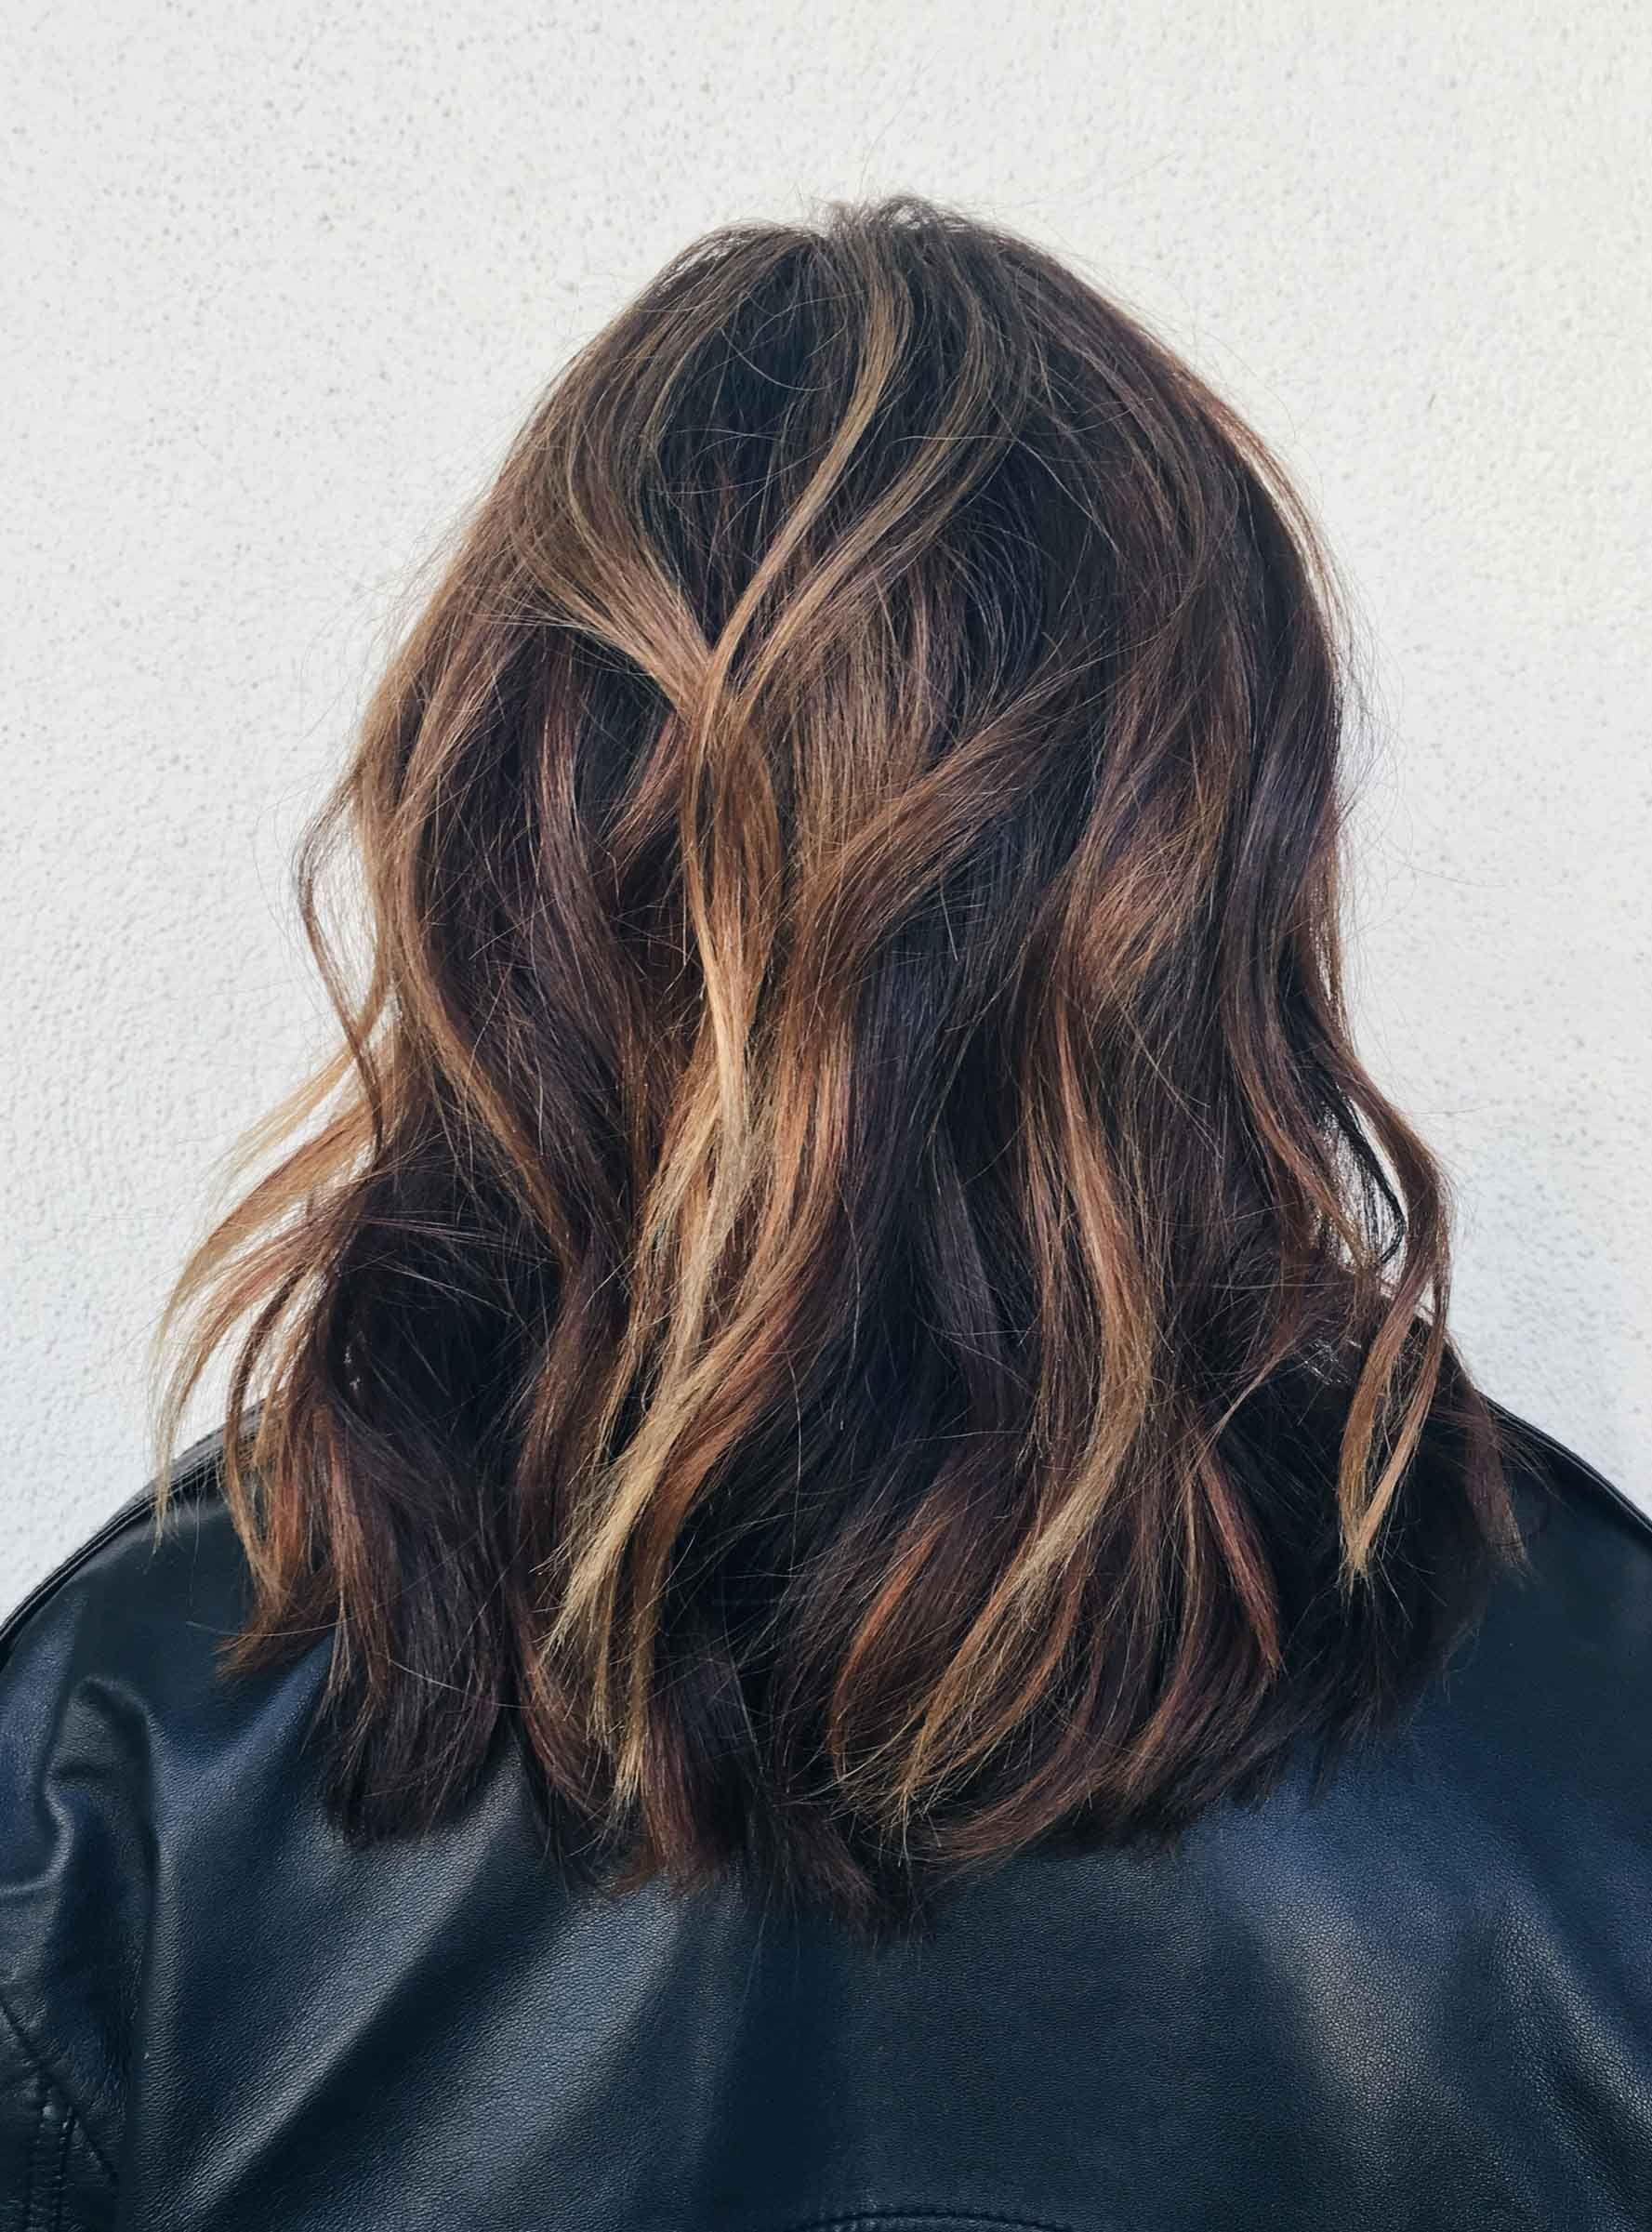 The 6 Biggest Hair Color Trends Taking La This Fall Hair